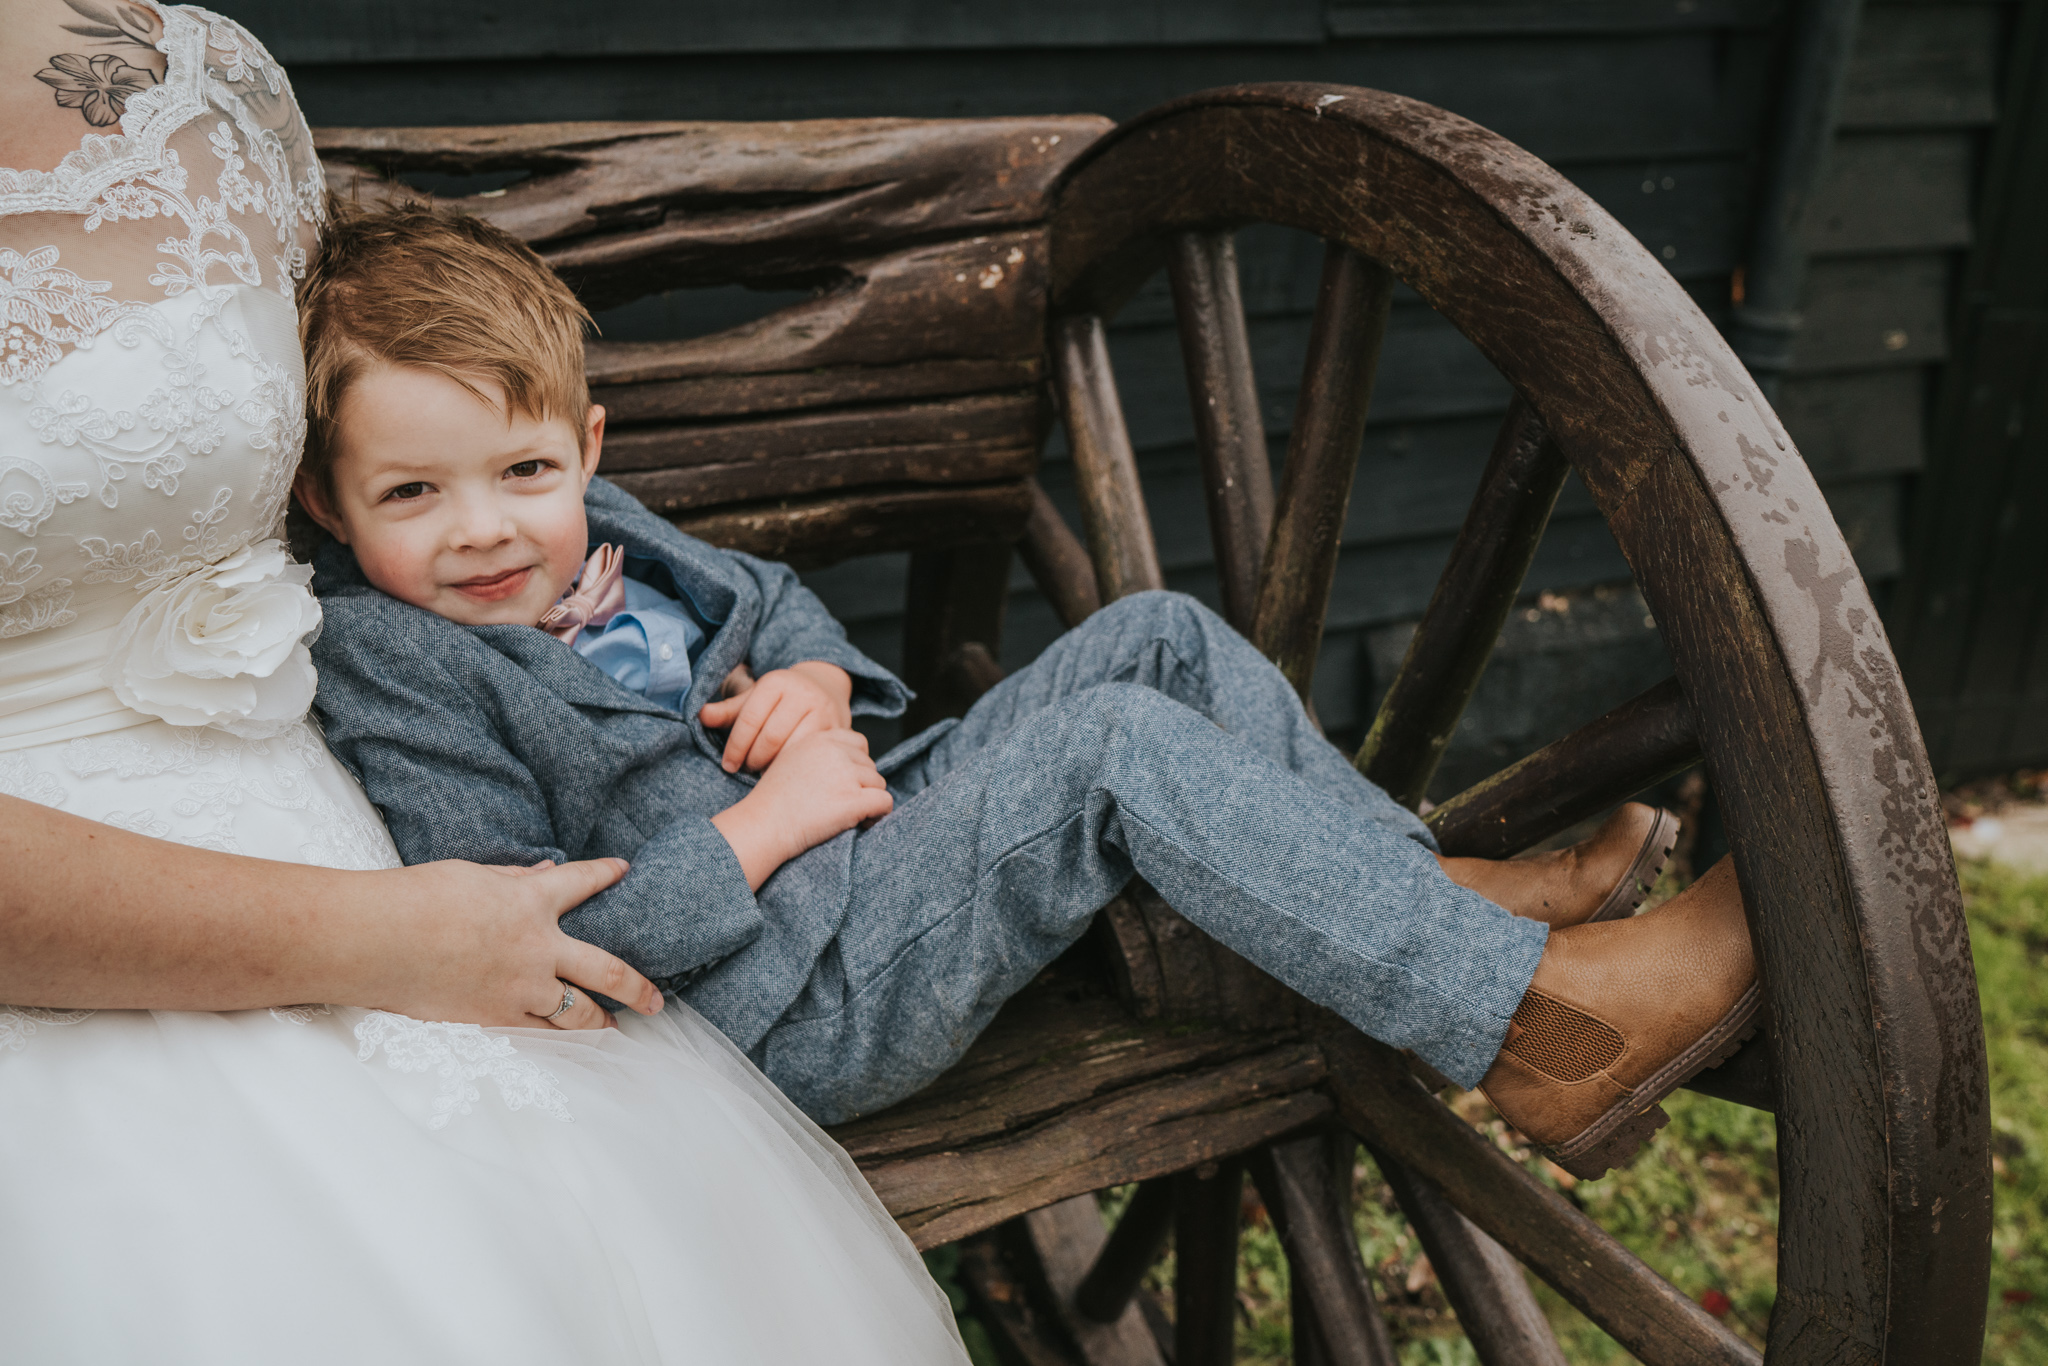 grace-elizabeth-essex-wedding-photographer-rhia-james-family-norfolk-essex-devon-suffolk (35 of 39).jpg